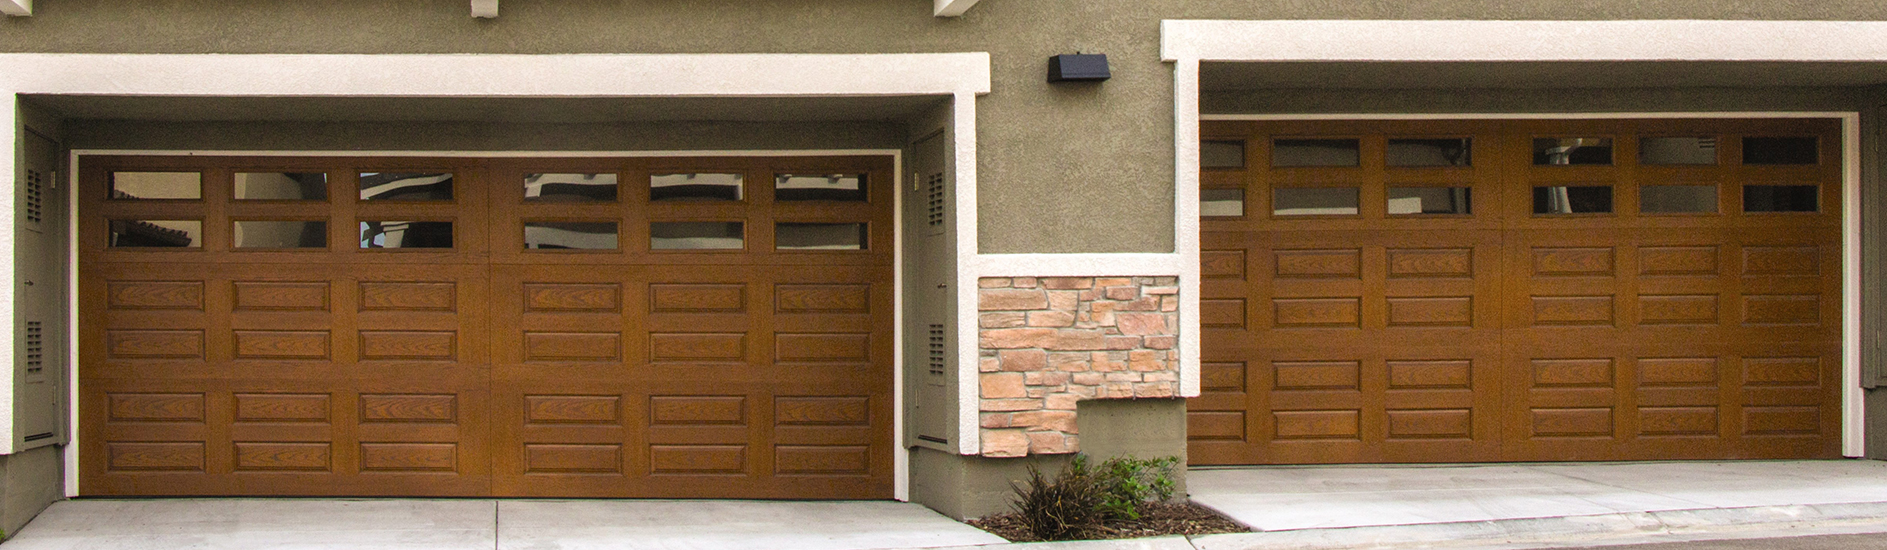 the garage charter fiberglass image of best choice doors ideas is home